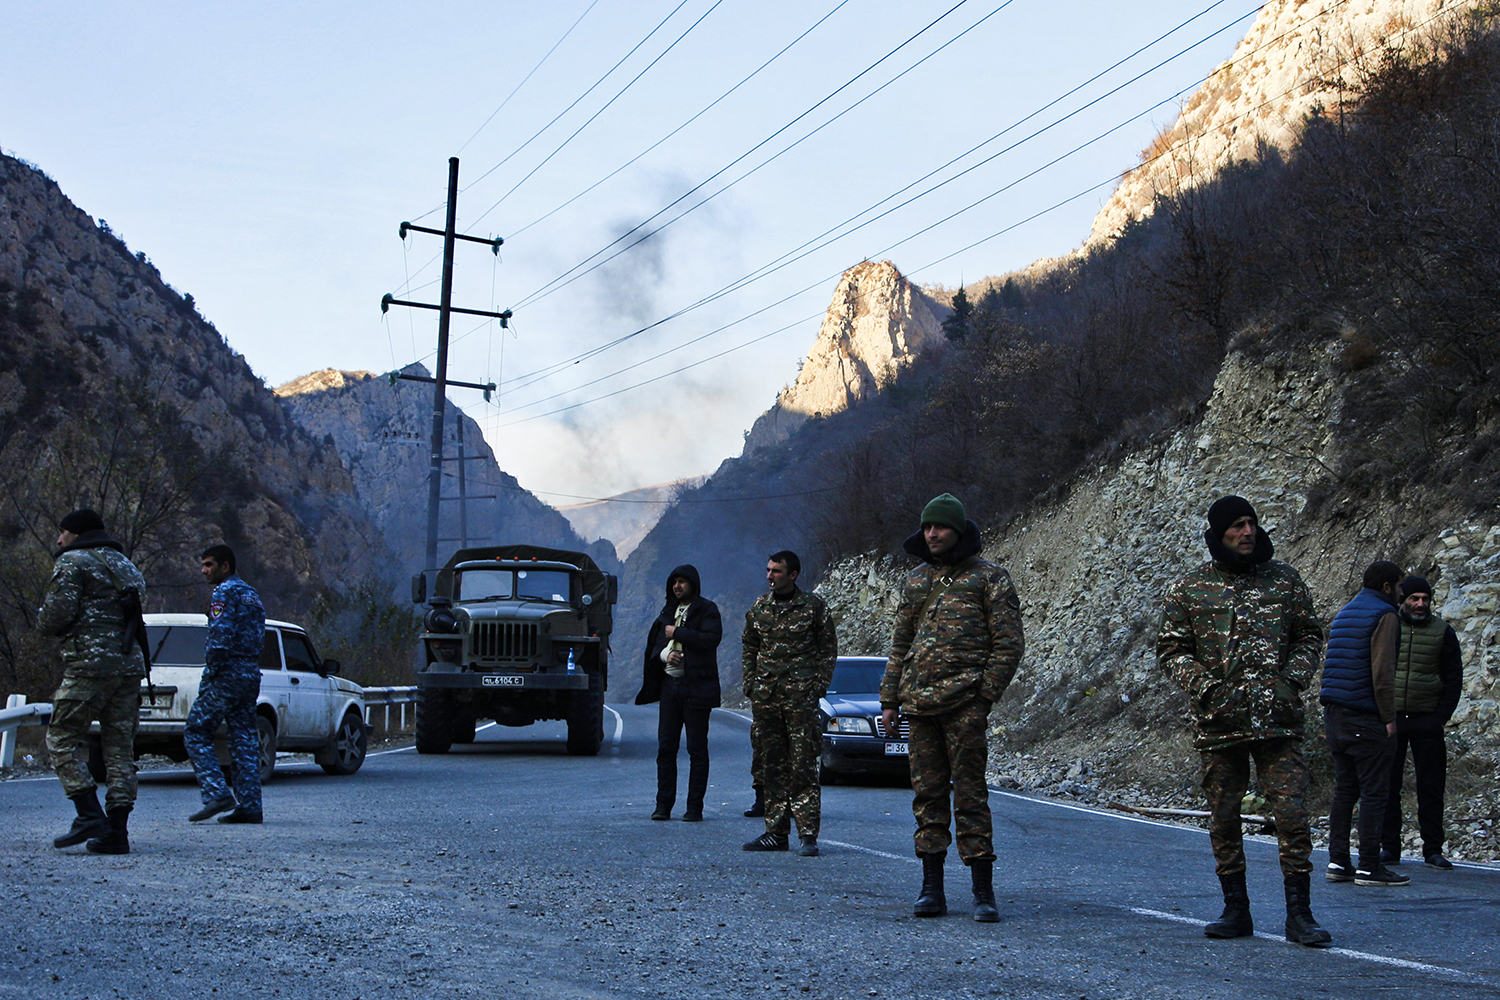 Ethnic Armenian soldiers block the main northern highway in Nagorno-Karabakh on November 14, 2020, forcing traffic to take a smaller, rougher road through Kalbajar.